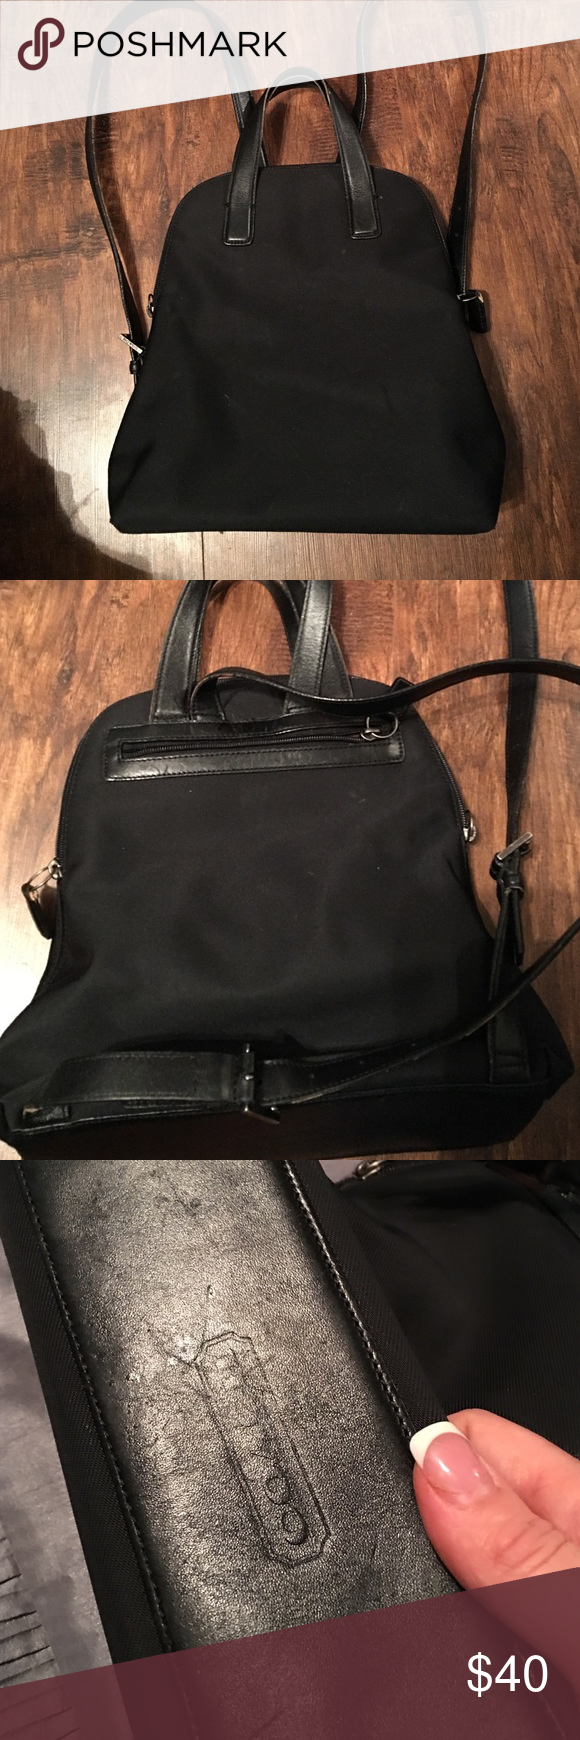 100% authentic coach backpack This is such a comfortable backpack. Not to big and send not too small. I have used it maybe 10xs so is in excellent condition! Coach Bags Backpacks